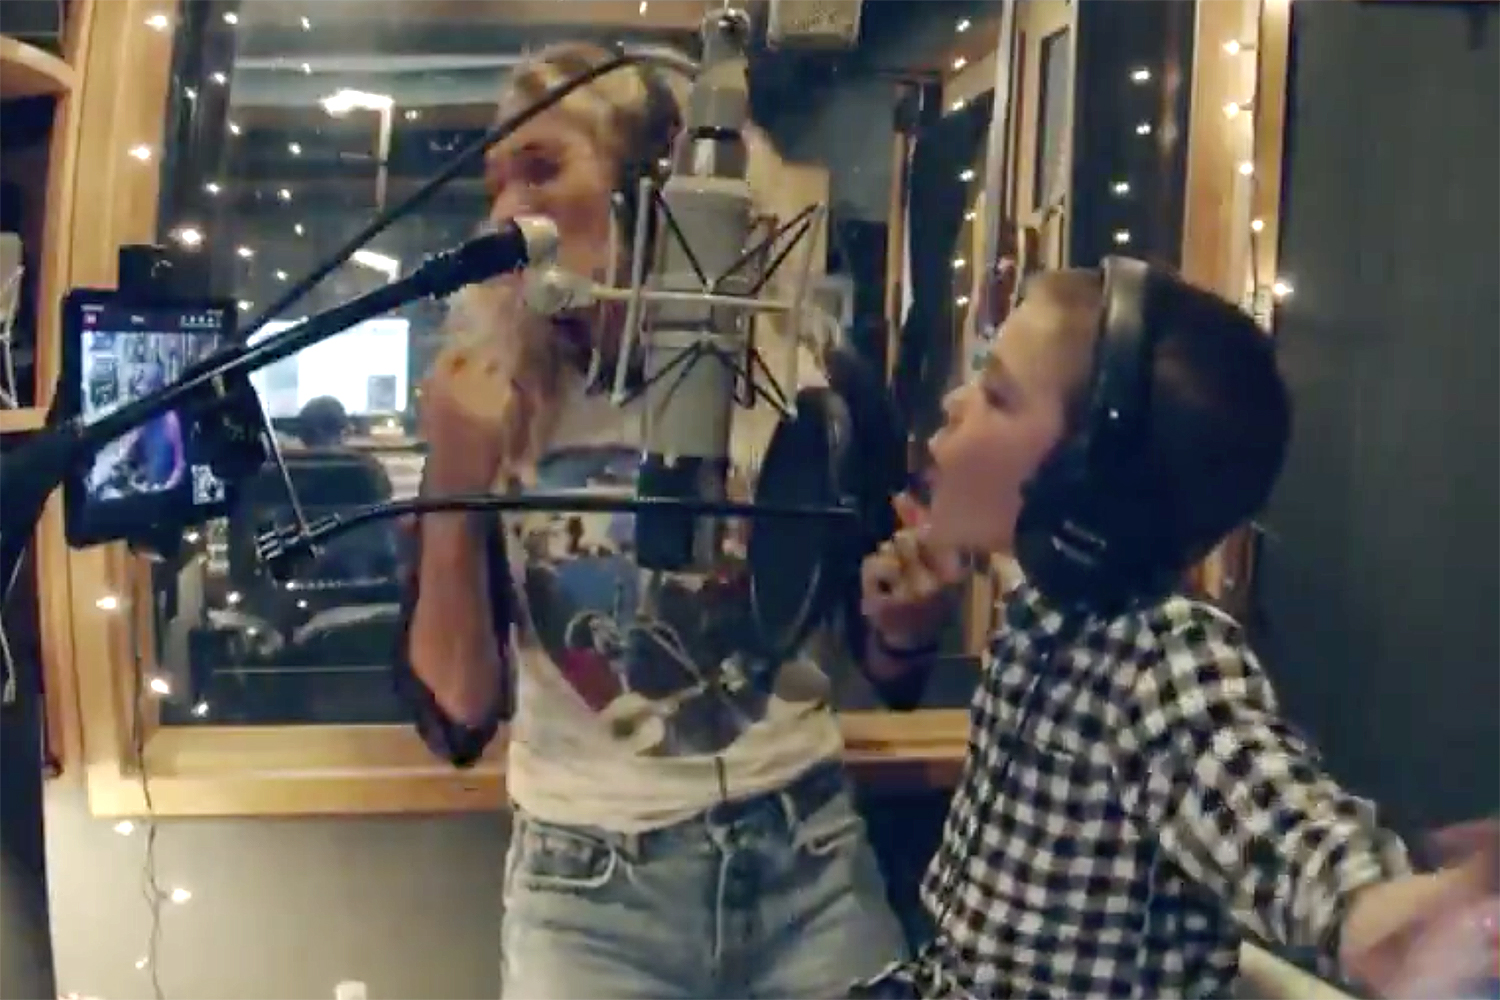 Carrie Underwood and her son in the studio